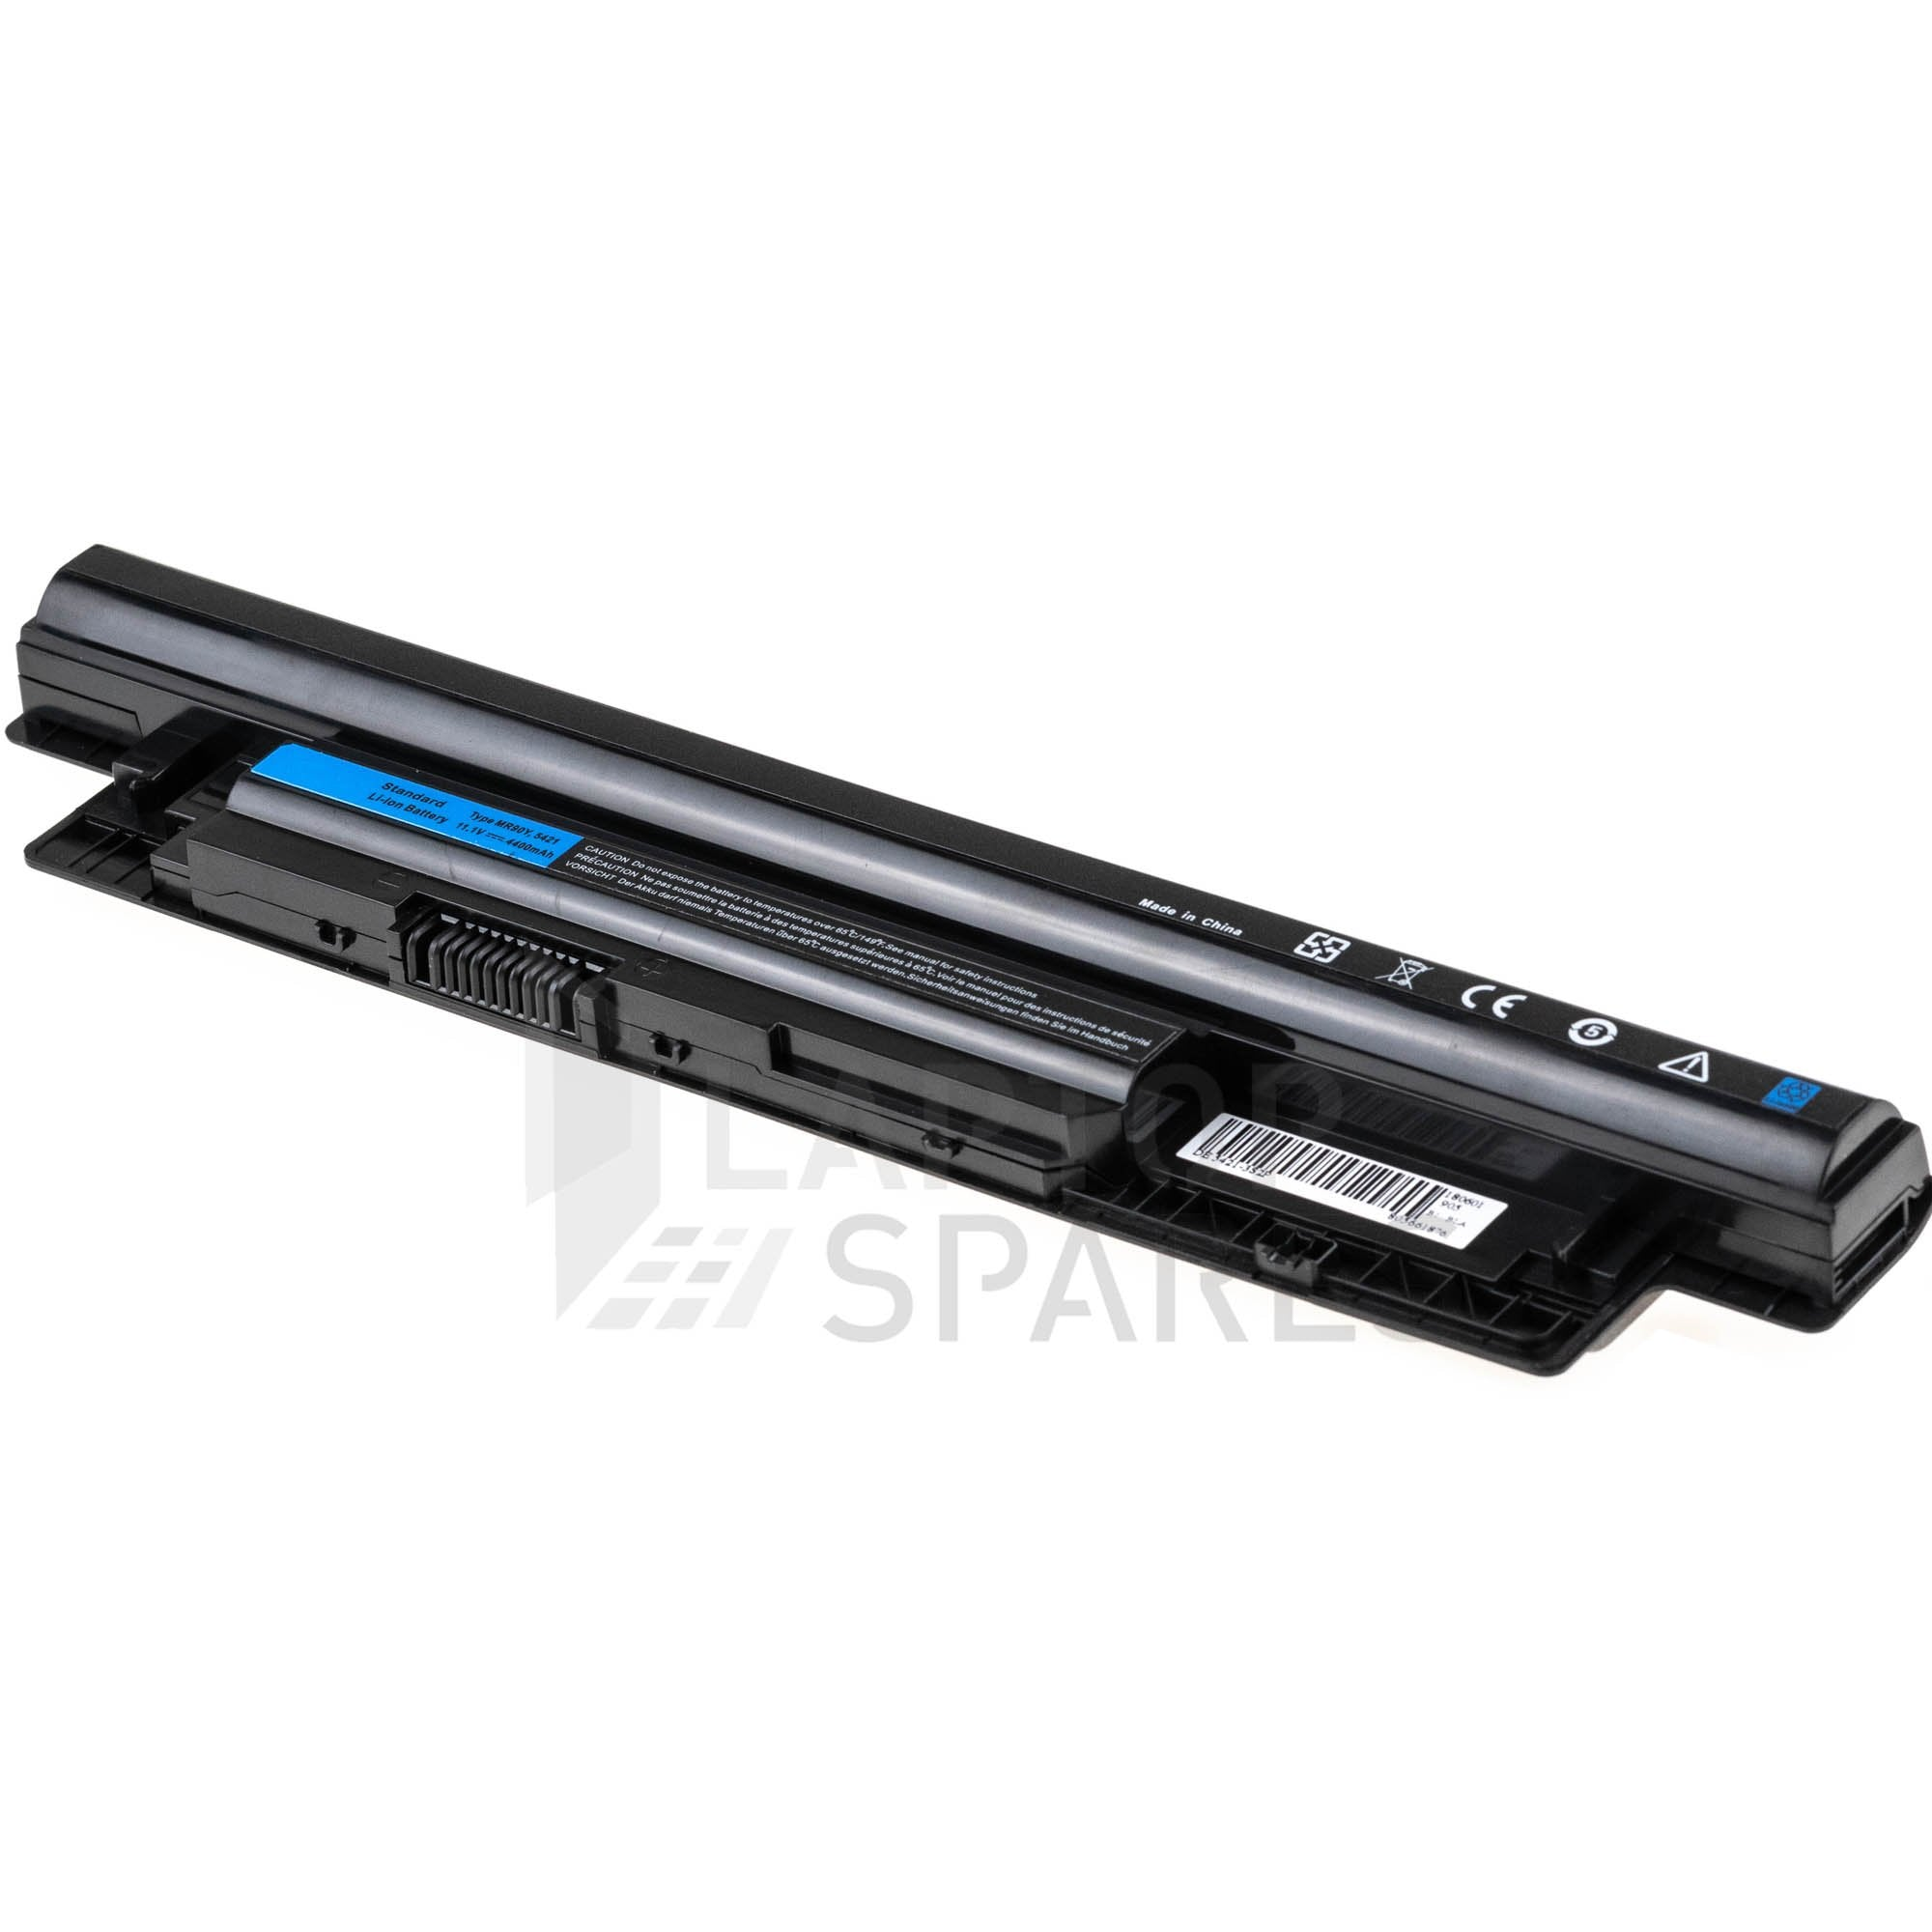 Dell 6HY59 6K73M 4400mAh 6 Cell Battery